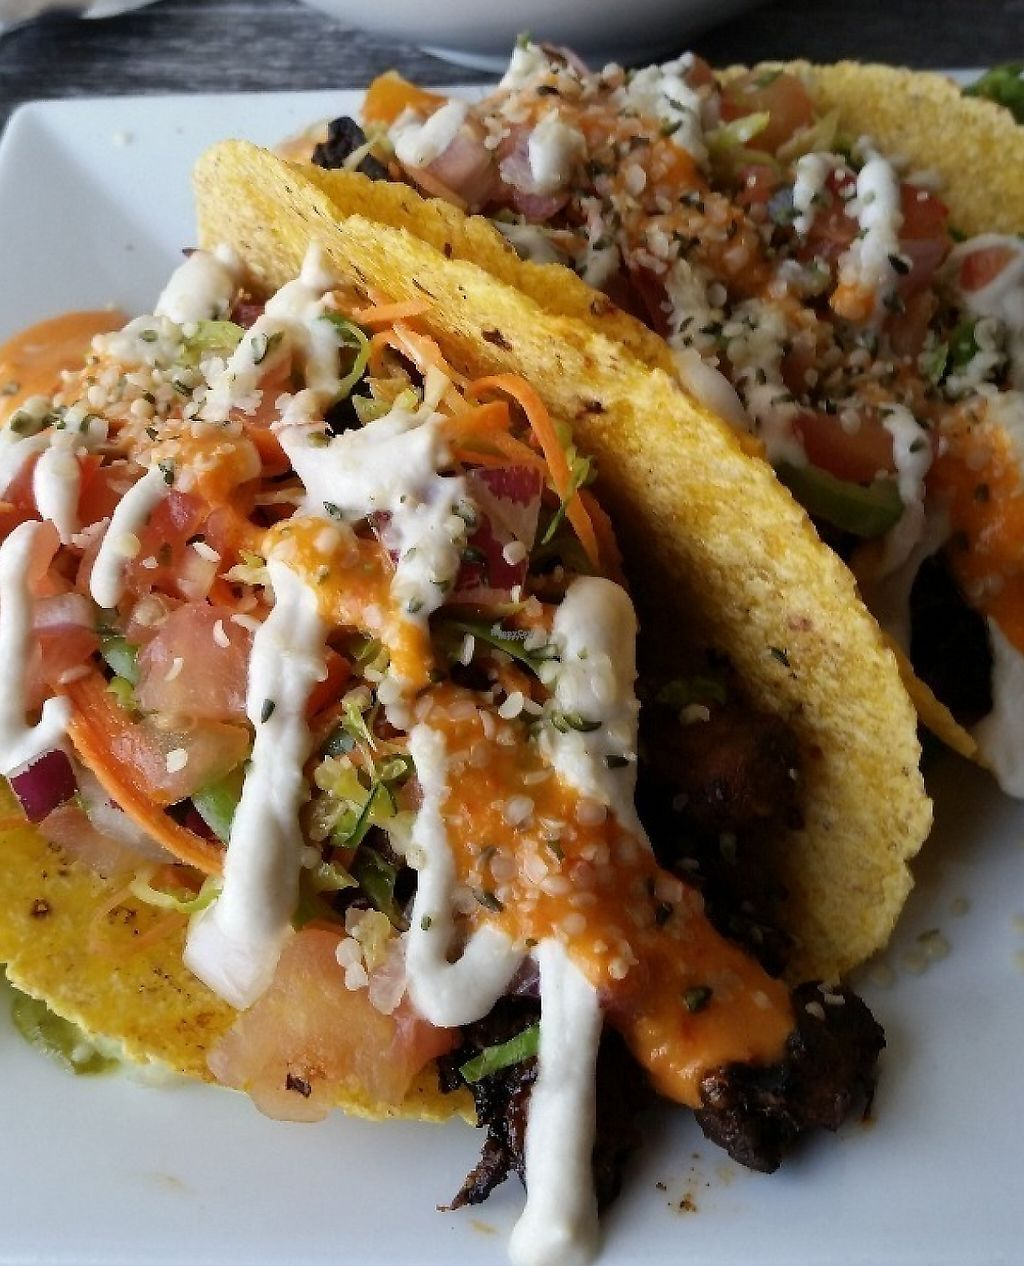 """Photo of Zest Kitchen & Bar  by <a href=""""/members/profile/caseystaker"""">caseystaker</a> <br/>portobello barbacoa tacos on organic corn tortilla shells on our lunch/brunch menu only <br/> December 3, 2016  - <a href='/contact/abuse/image/35705/230411'>Report</a>"""